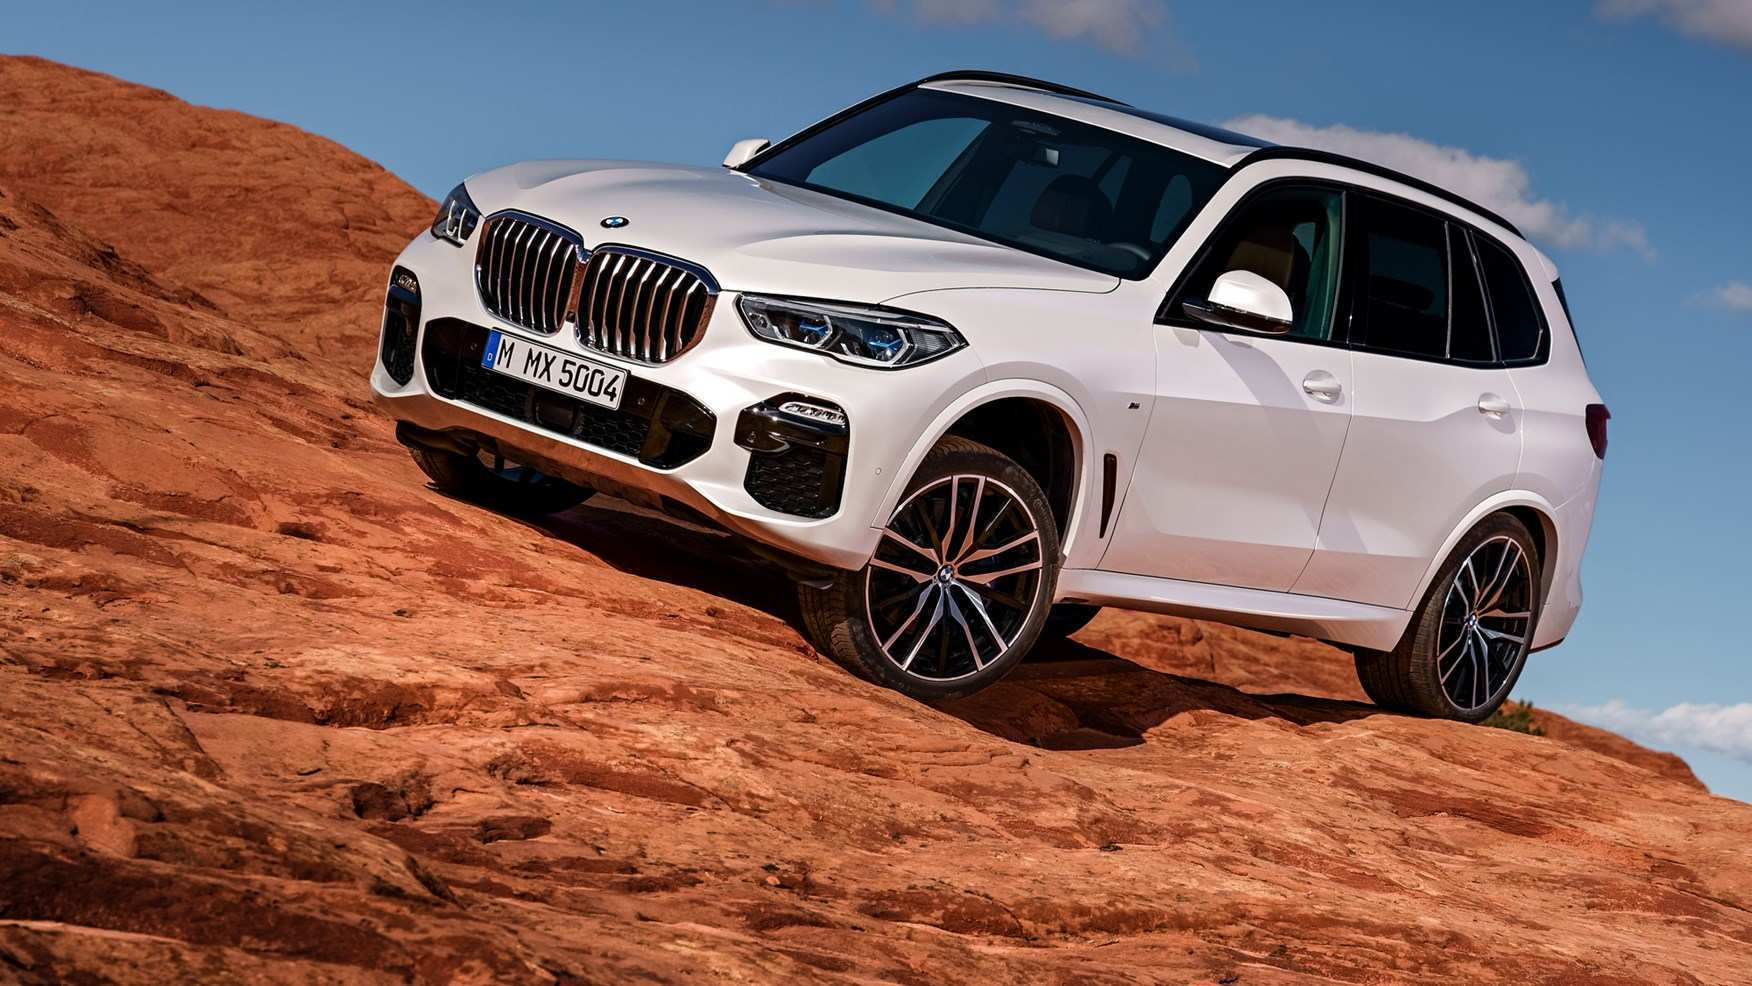 50 The Best 2020 Next Gen BMW X5 Suv Exterior And Interior